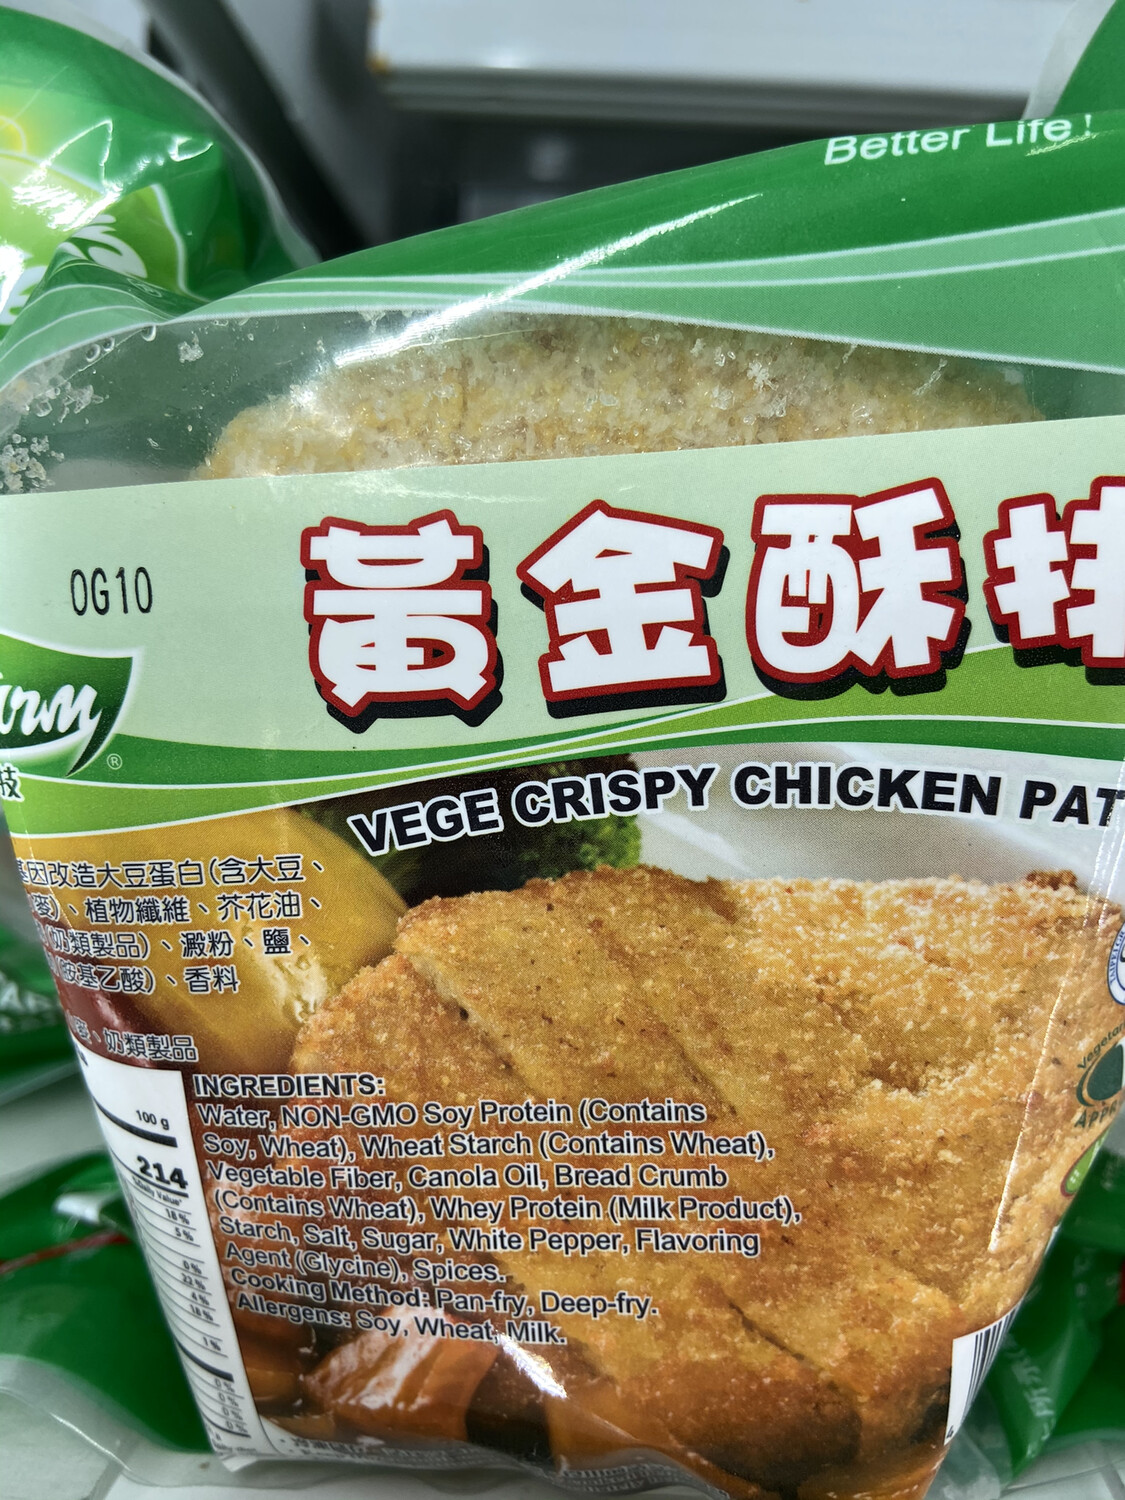 【RF】素食 斋饭 Vege Crispy Chicken Patties 黄金酥排 1.1lbs